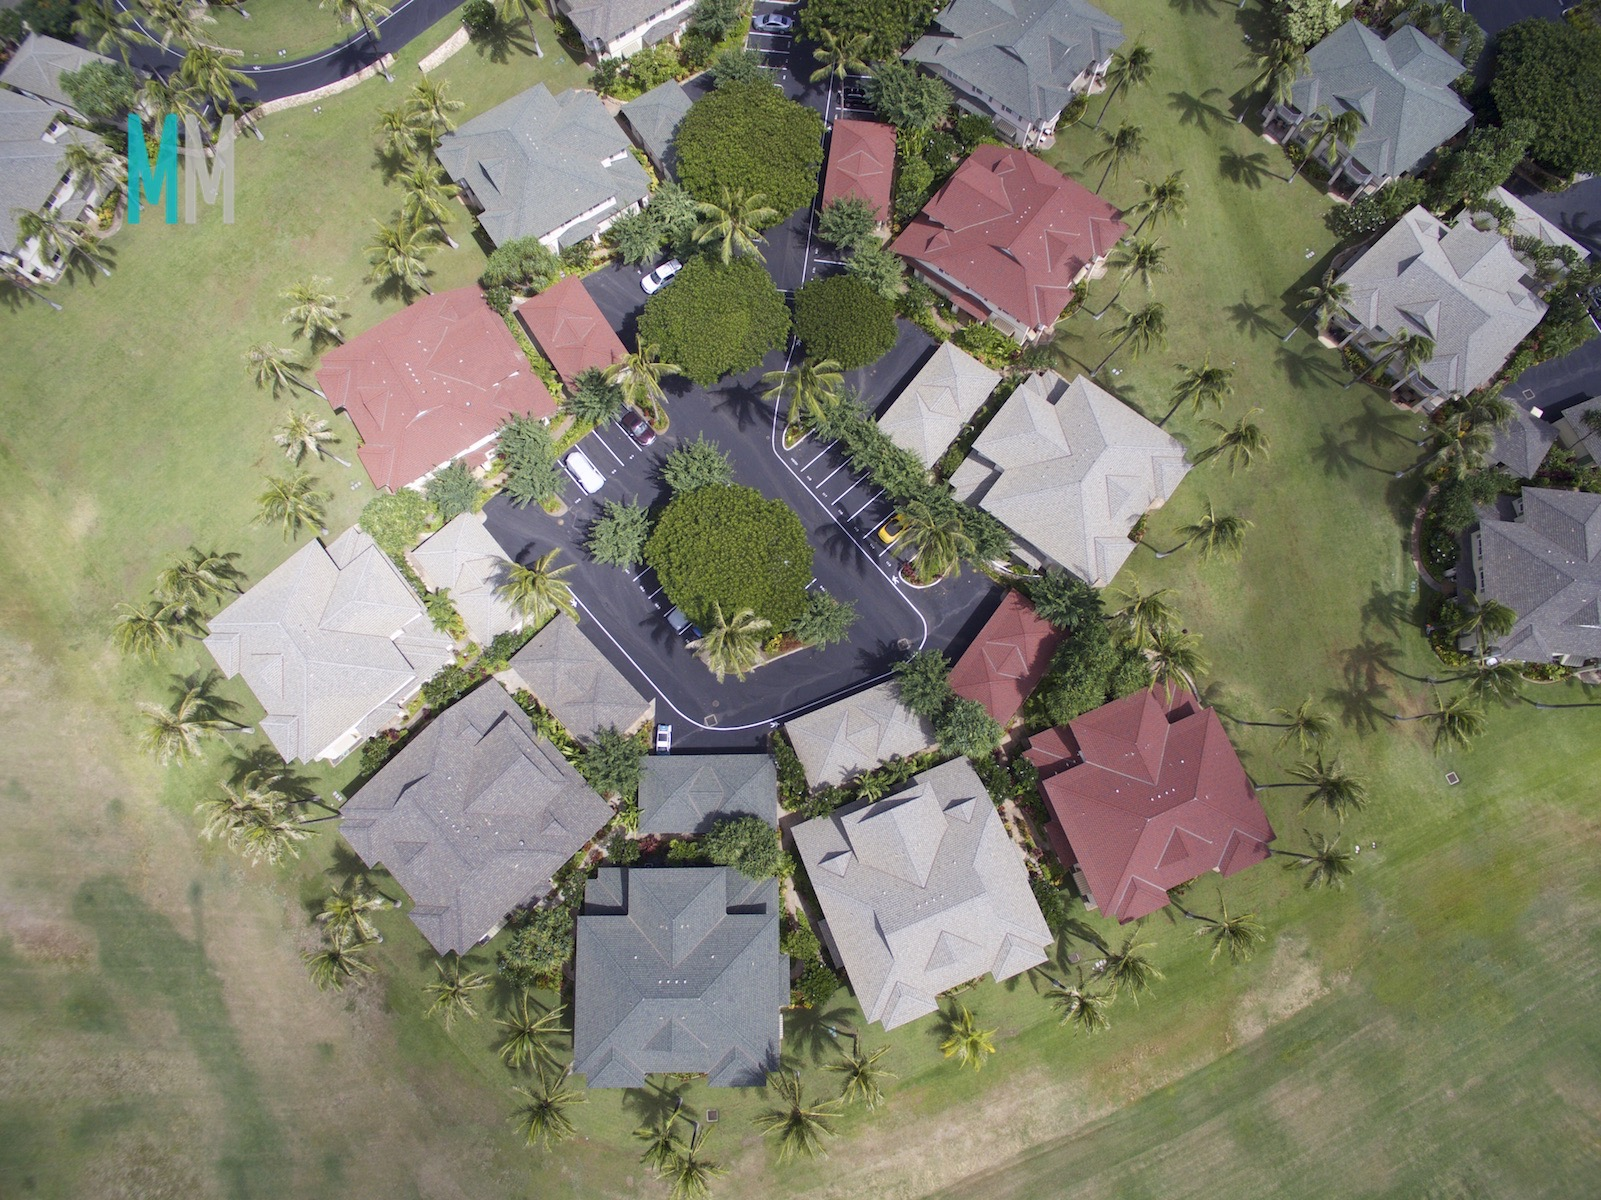 kai-lani-ko-olina-aerial-view-munro-murdock-hawaii-real-estate-dji_0040